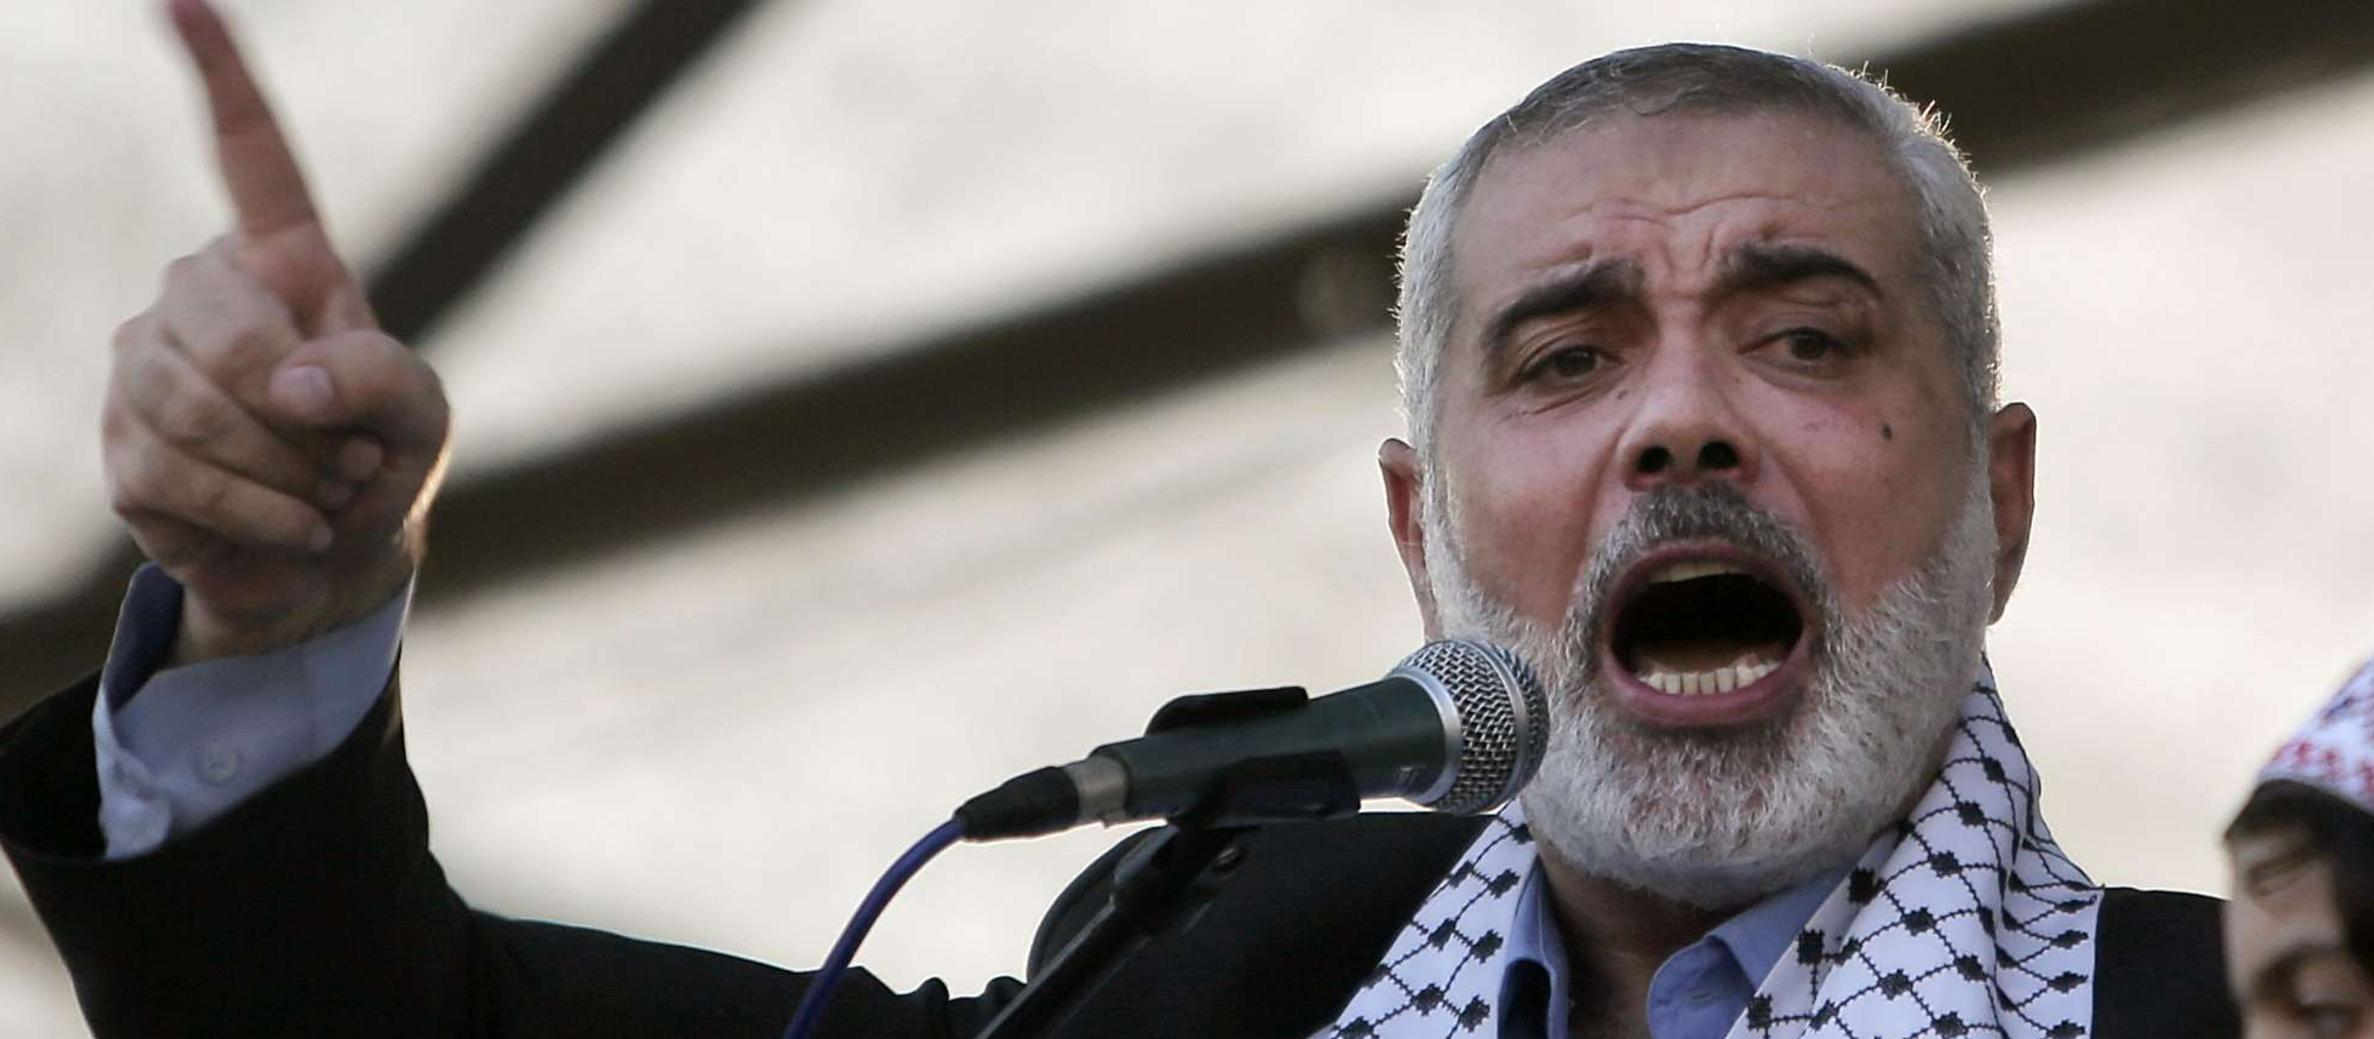 Hamas: 'There will be an explosion' unless Israel lifts Gaza blockade